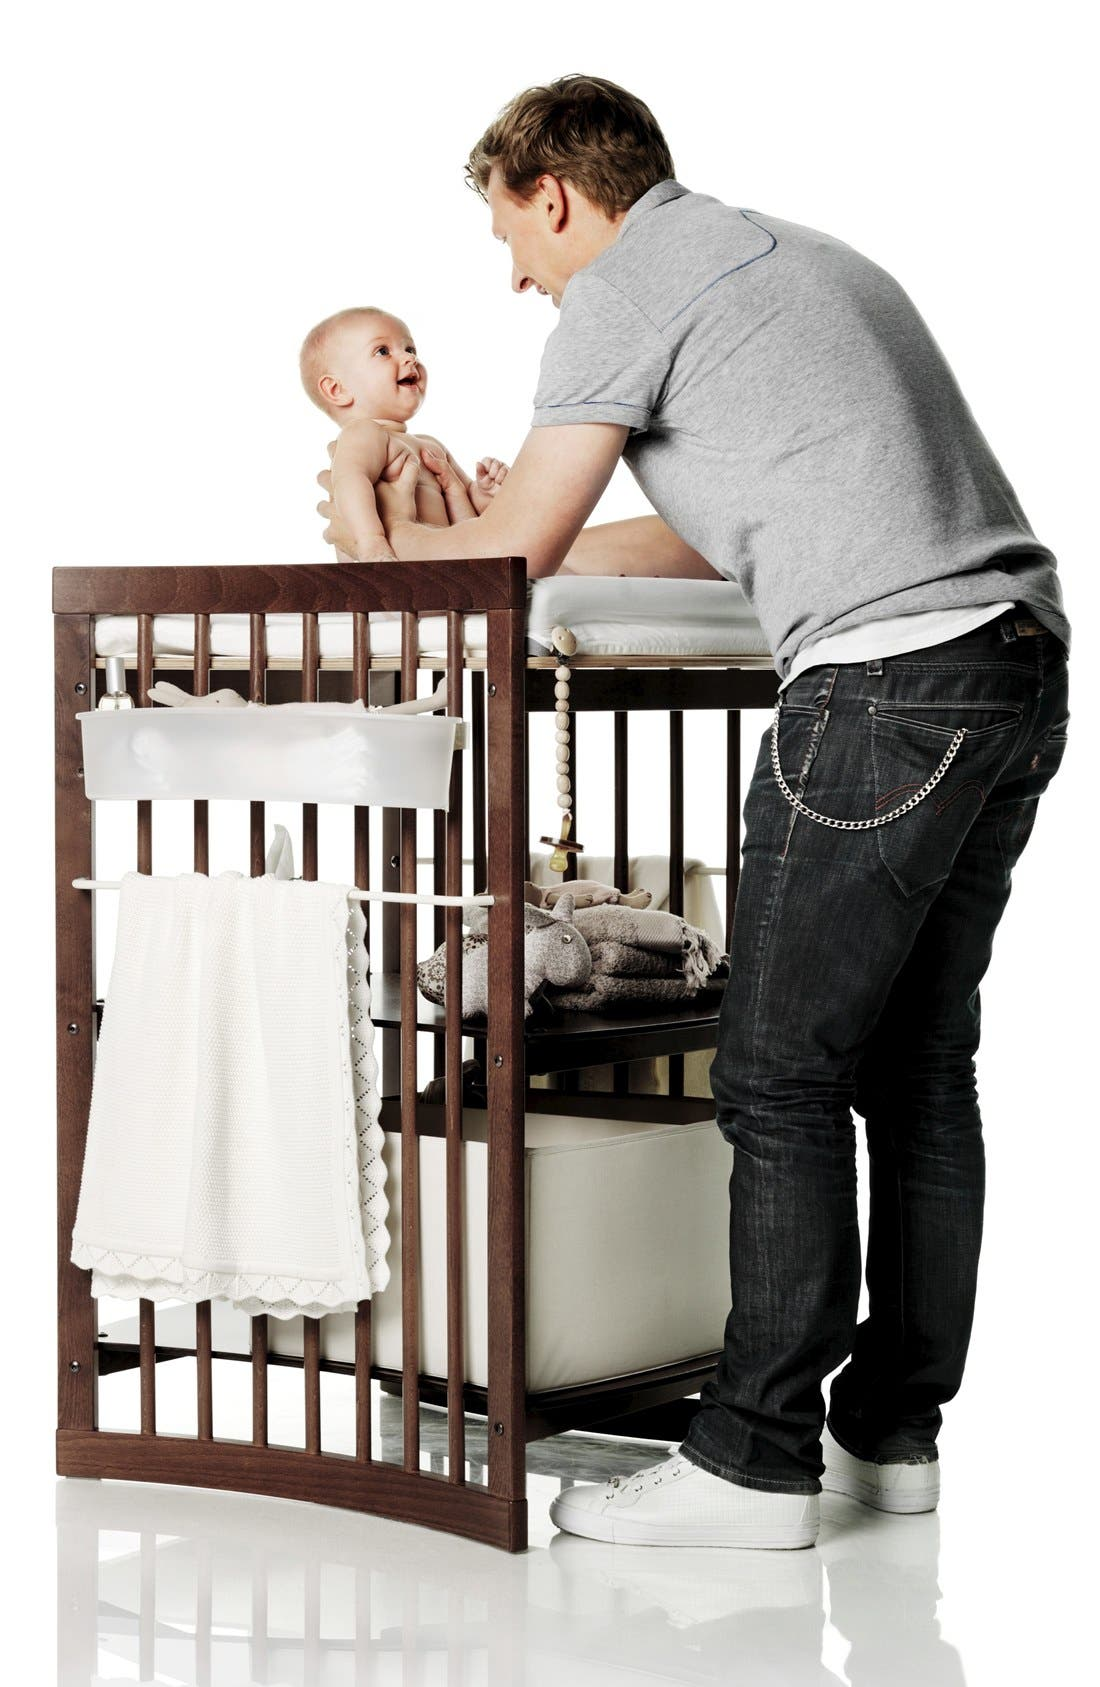 Main Image - Stokke 'Care™' Changing Station